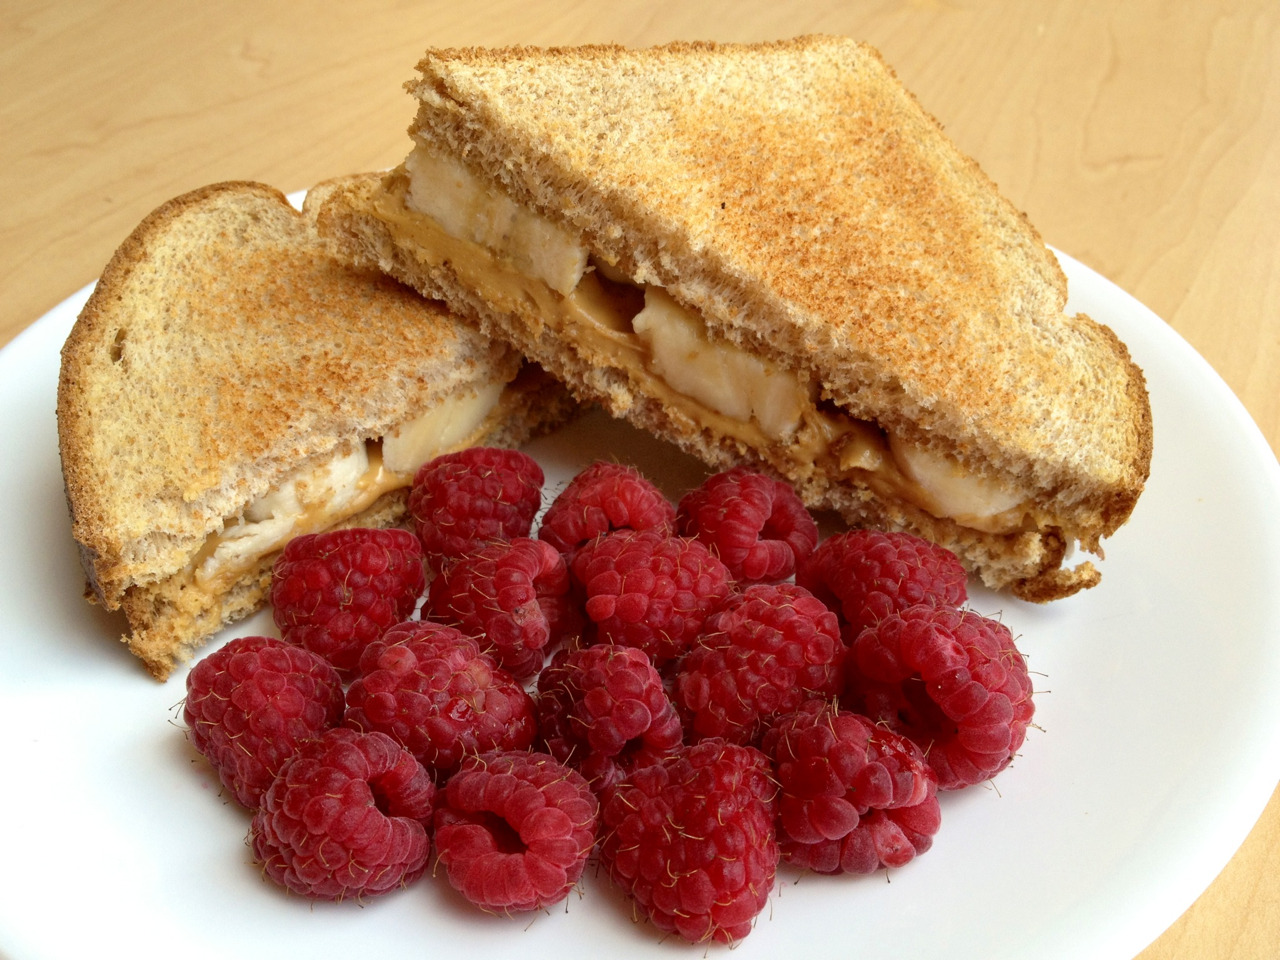 veggieomnom:  Whole wheat toast with white chocolate wonderful peanut butter, banana slices, raspberries, and a glass of almond milk.